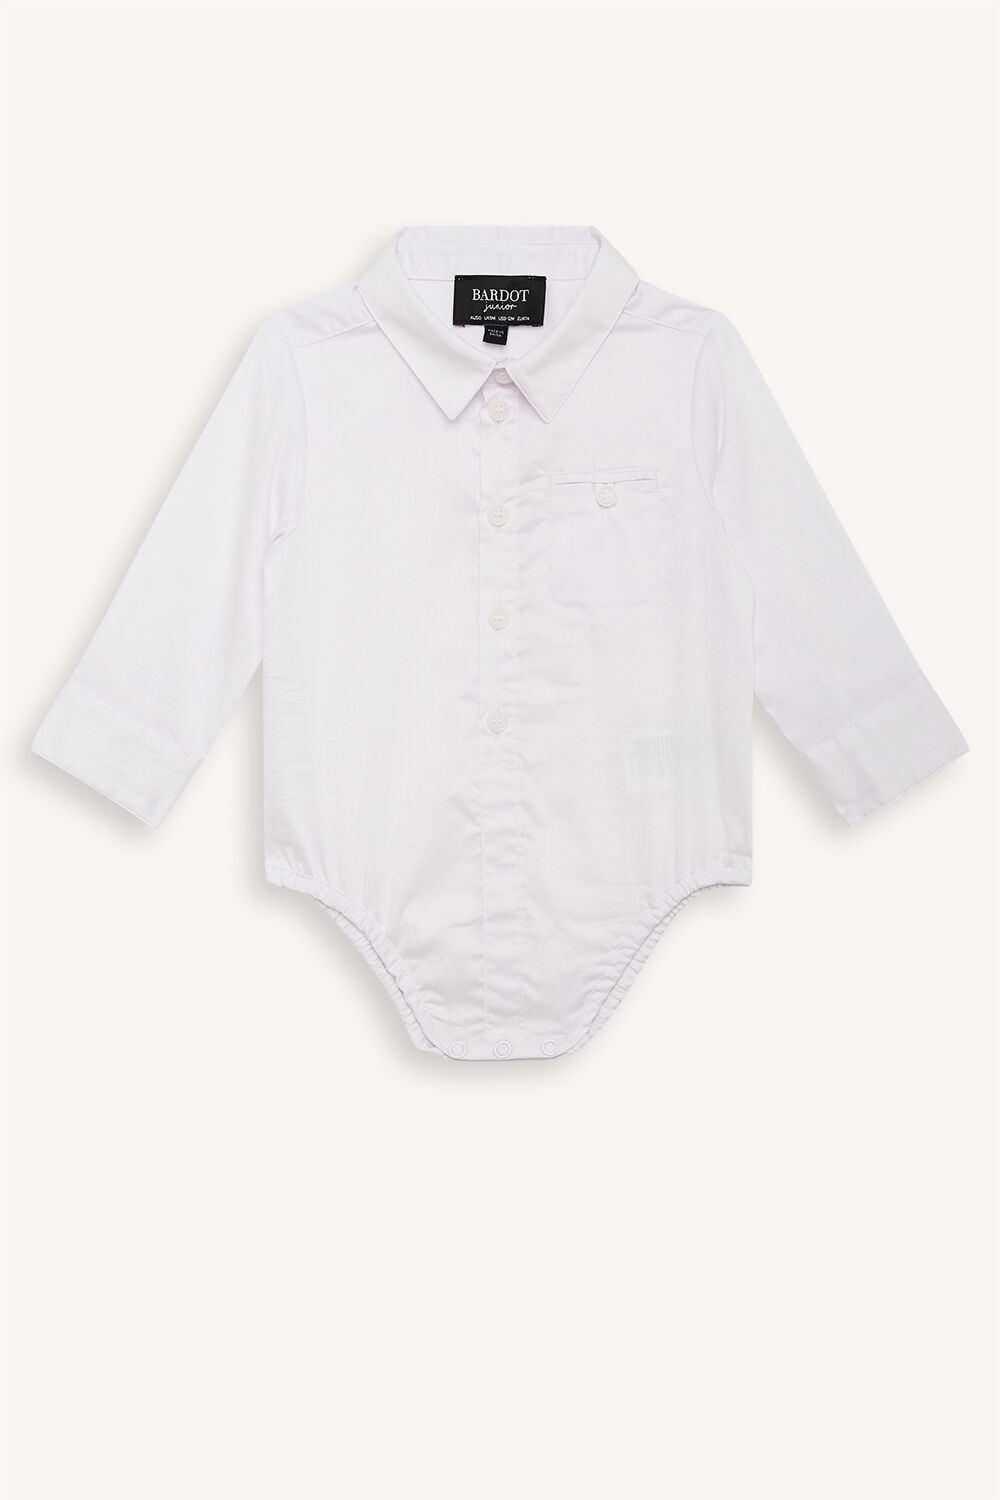 TEXTURED SHIRT GROW in colour BRIGHT WHITE